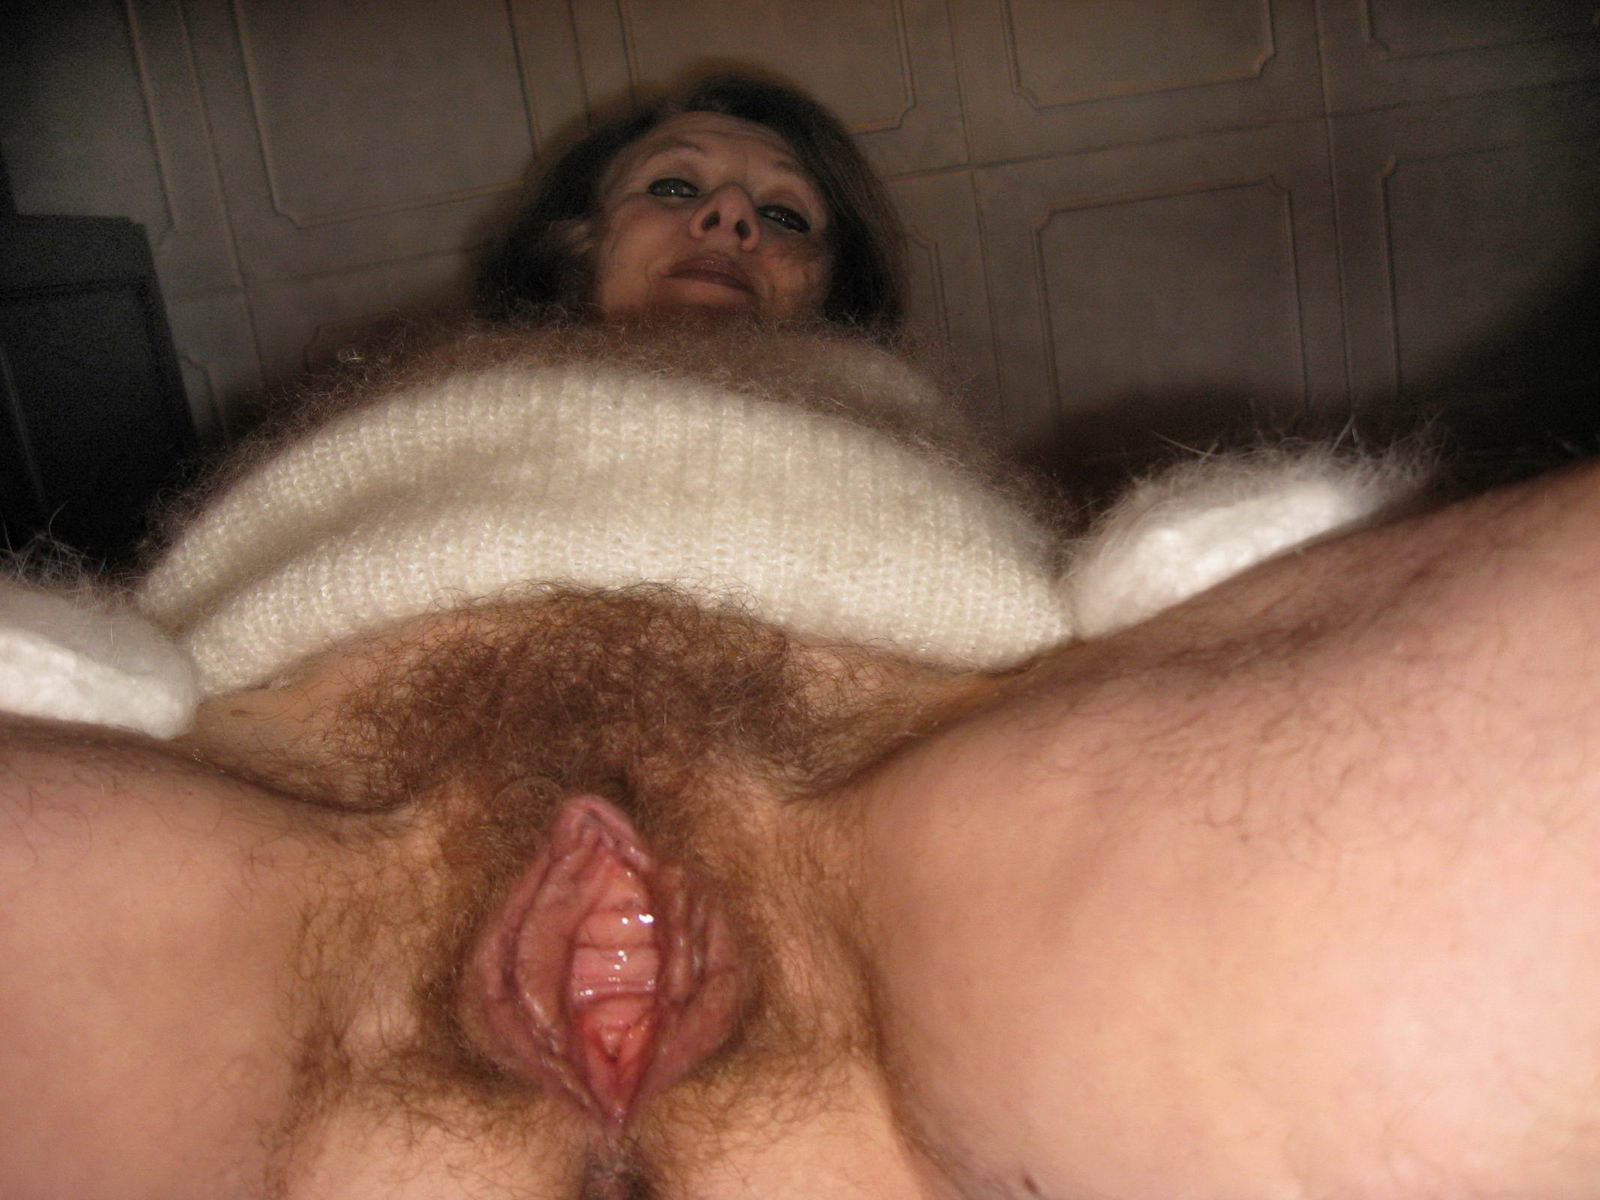 Hot Granny Porn Pictures And Vids - Free Granny And Mature -6711